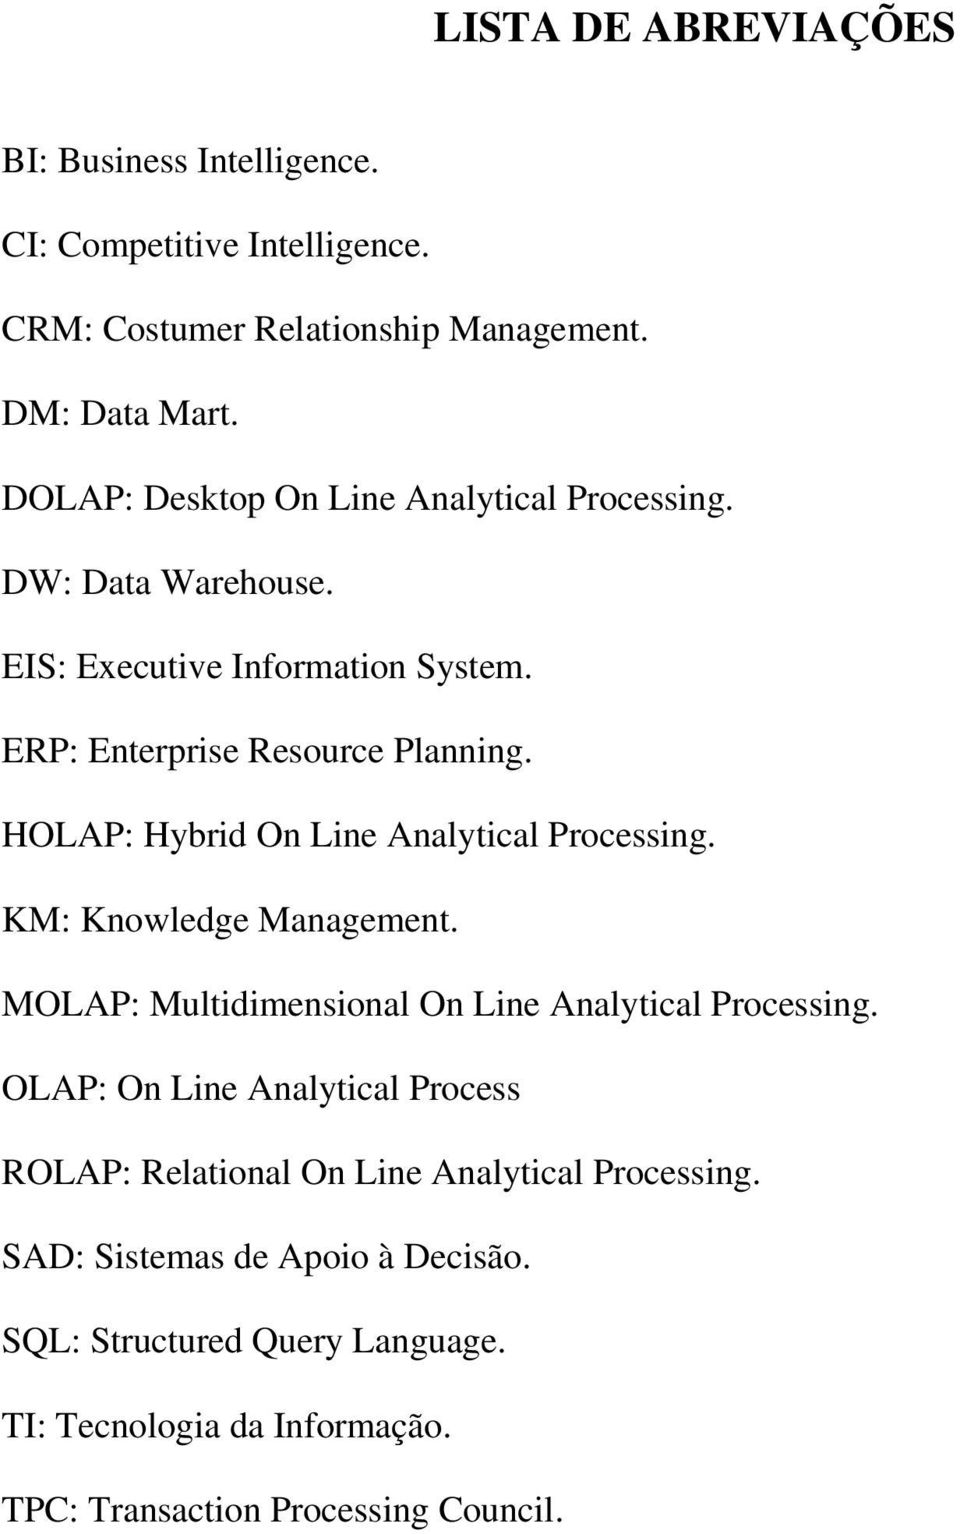 HOLAP: Hybrid On Line Analytical Processing. KM: Knowledge Management. MOLAP: Multidimensional On Line Analytical Processing.